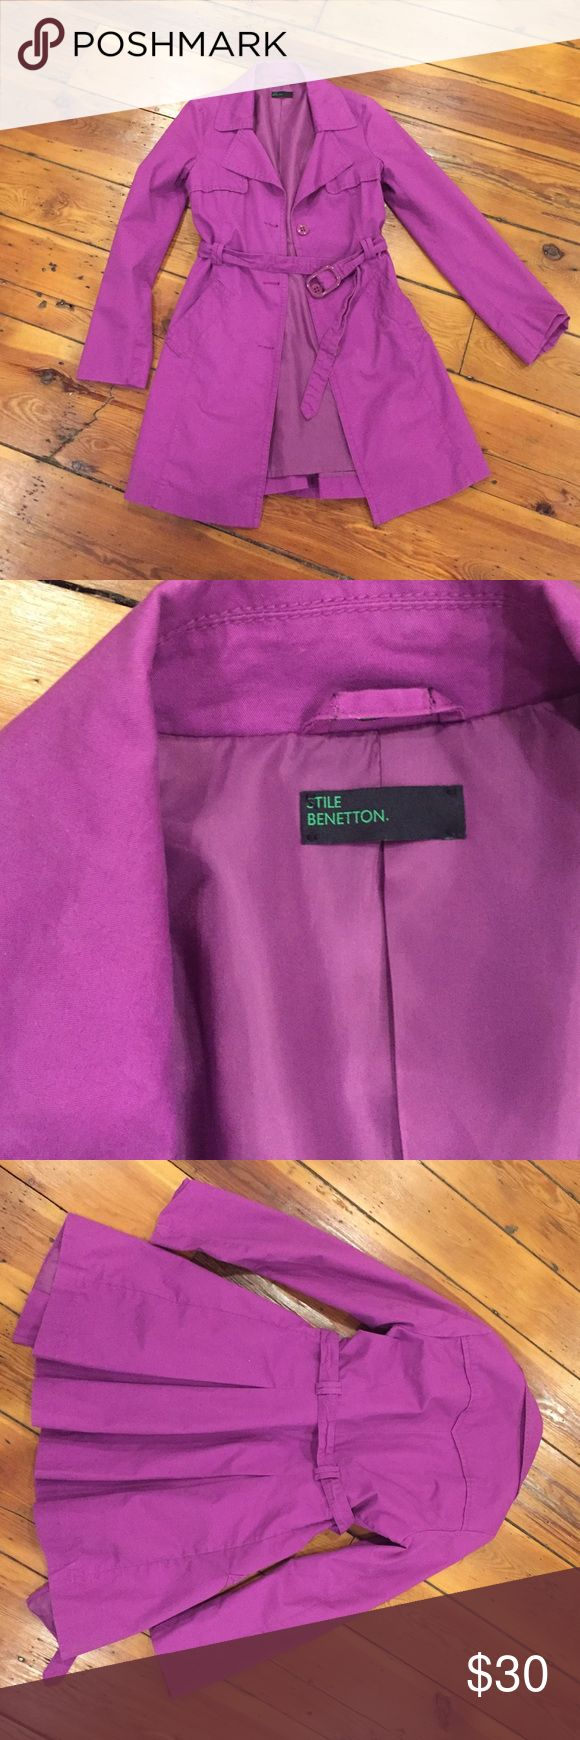 Beautiful mid-length purple trench coat! Gorgeous purple trench coat by Stile Benneton. Size 40. Fits like a S. Fully lined. Outside of coat is 100% cotton. Length is 33 inches. Jackets & Coats Trench Coats